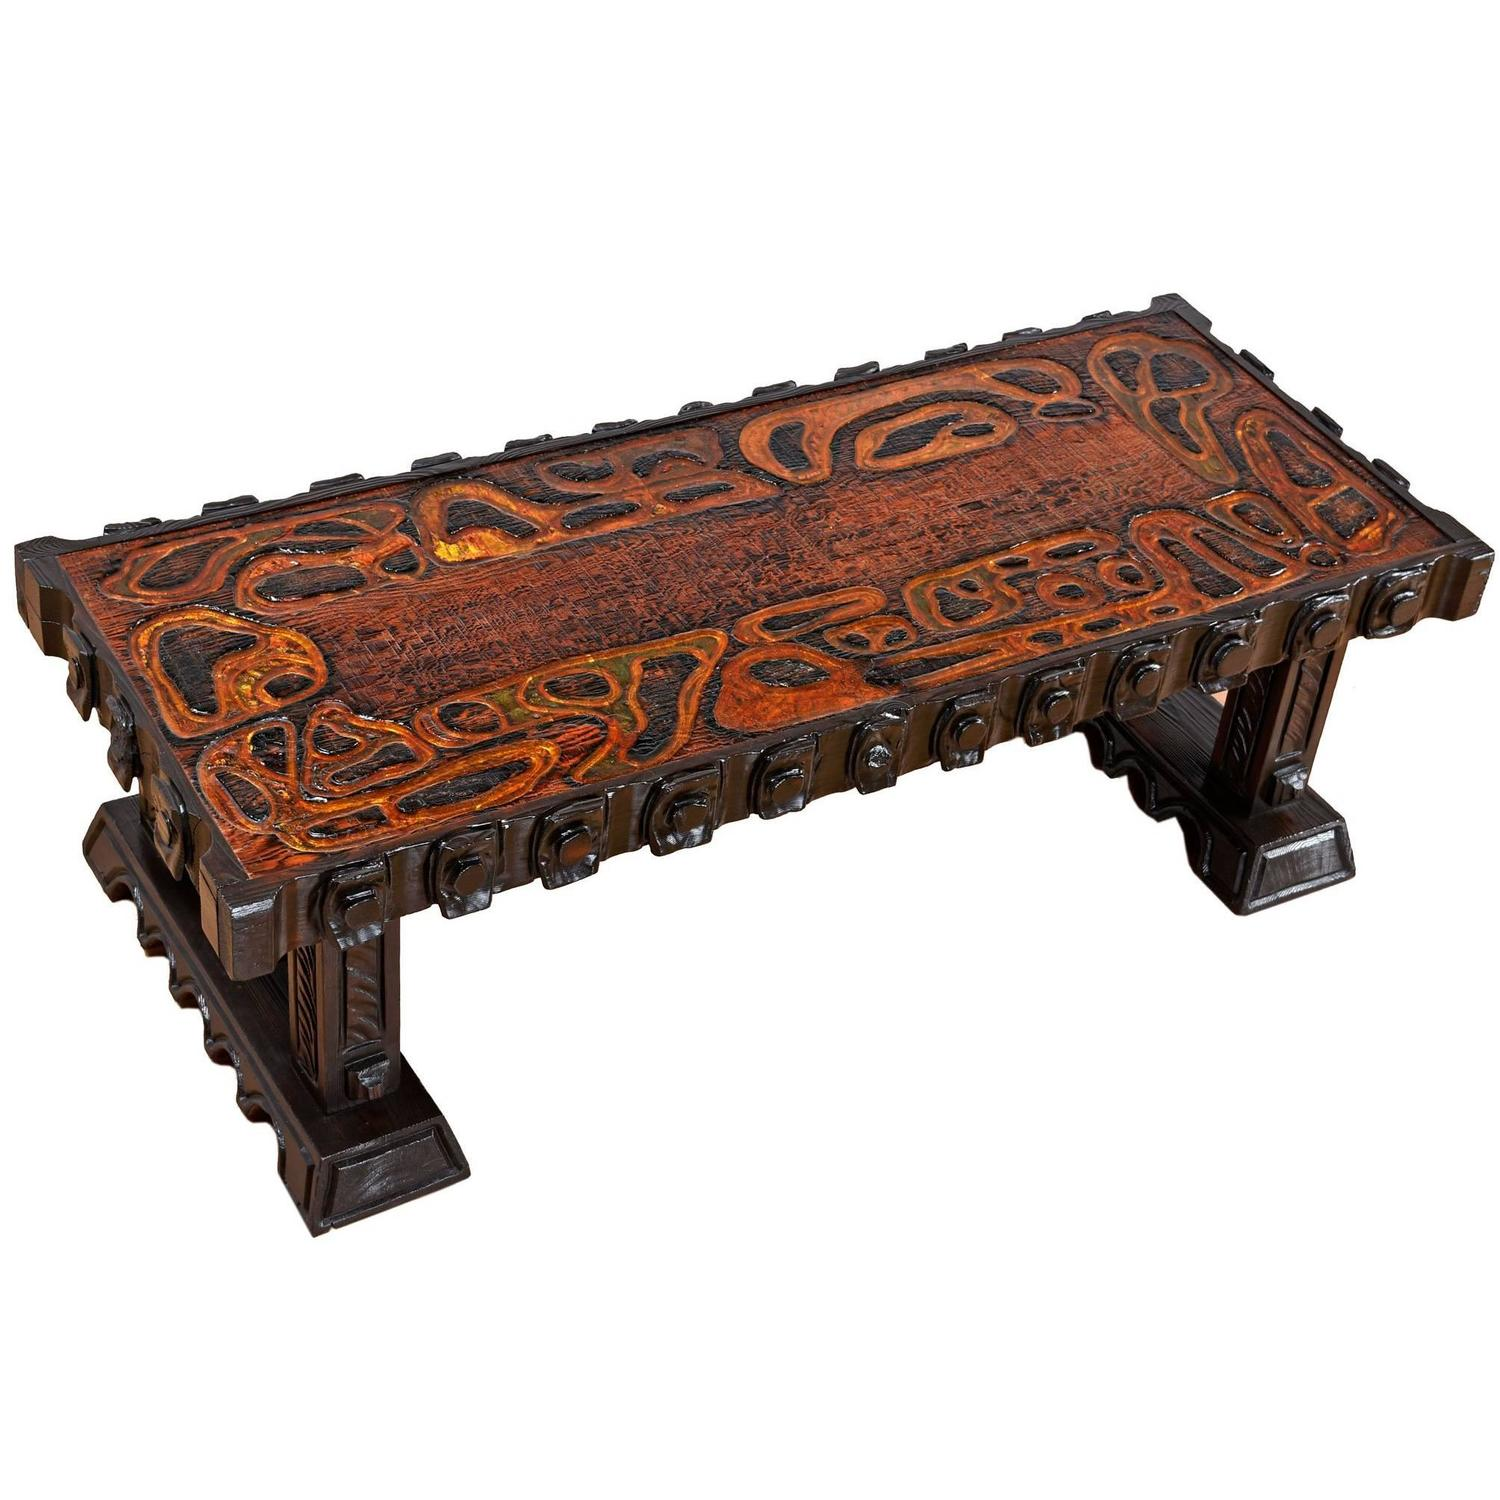 Lovely Polynesian Inspired Carved Witco Tiki Coffee Table For Sale At 1stdibs